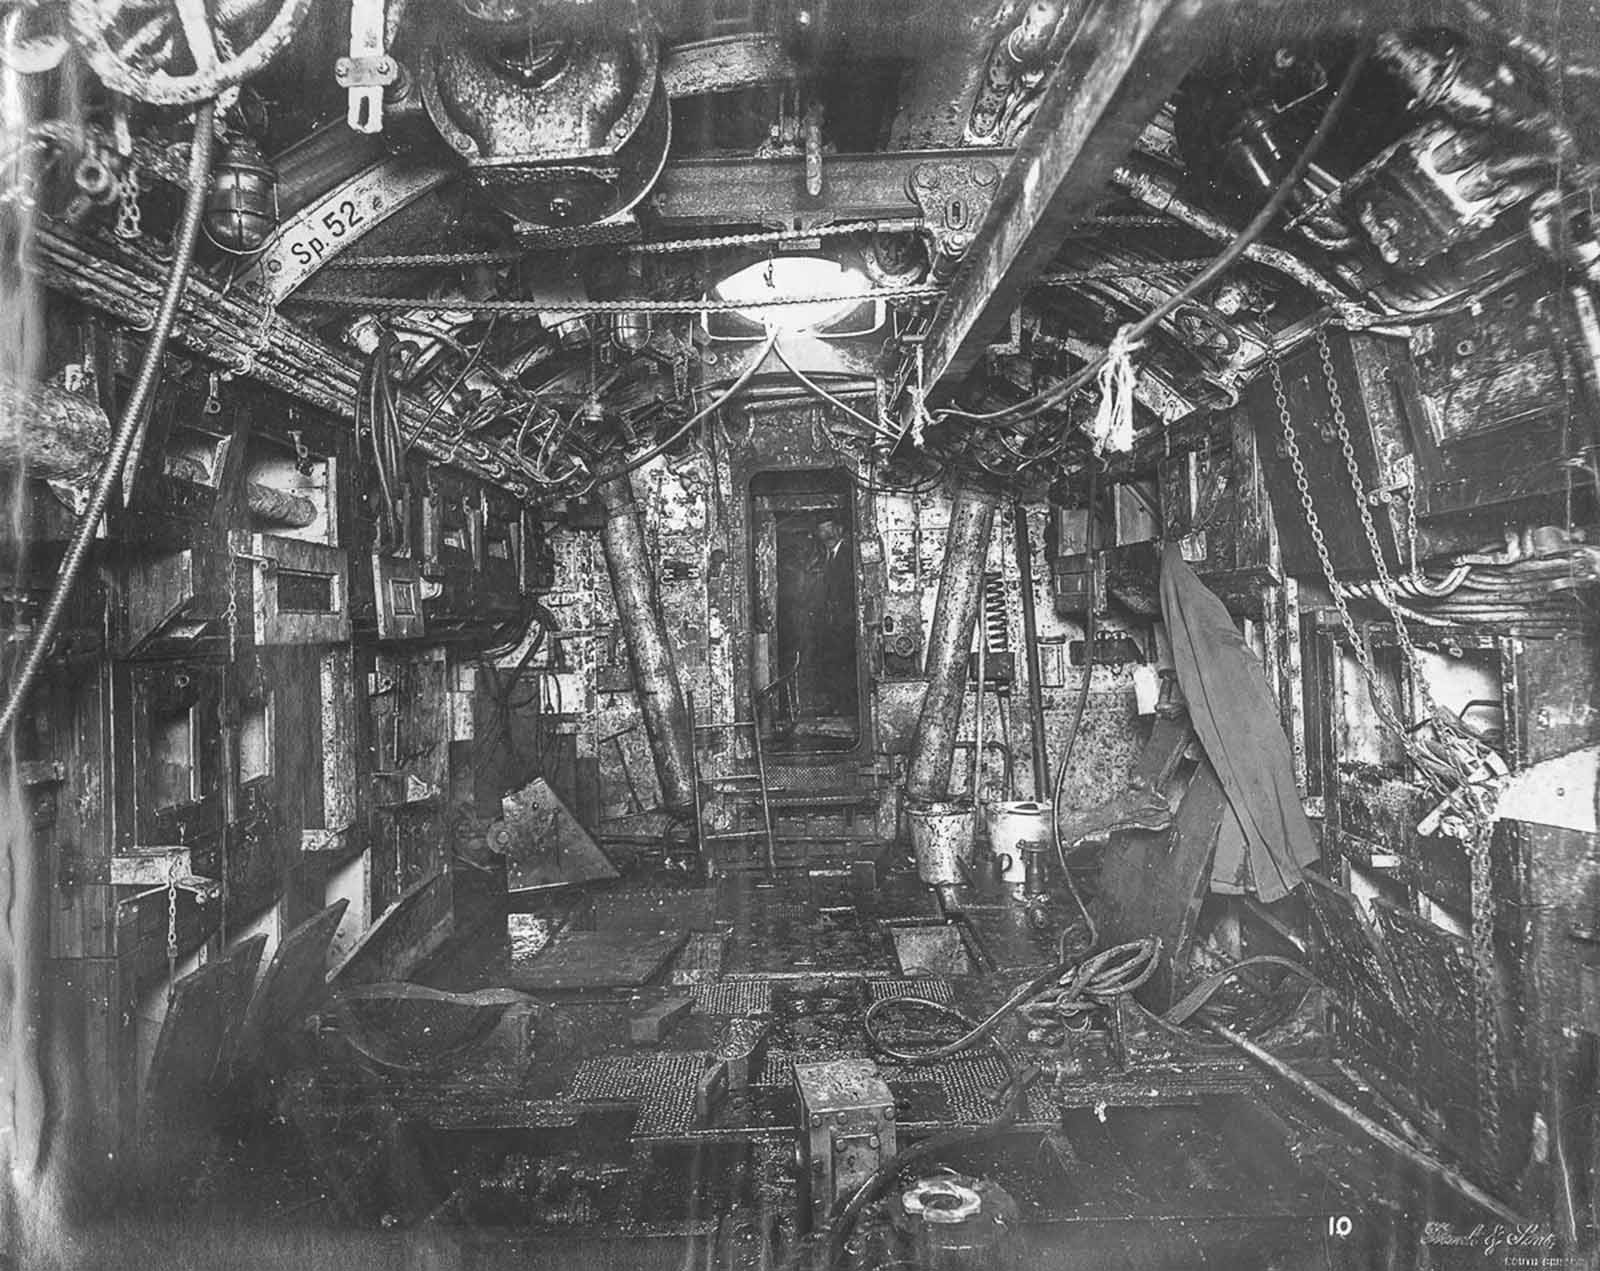 Torpedo room looking aft. The beam for lifting torpedoes into place is overhead.